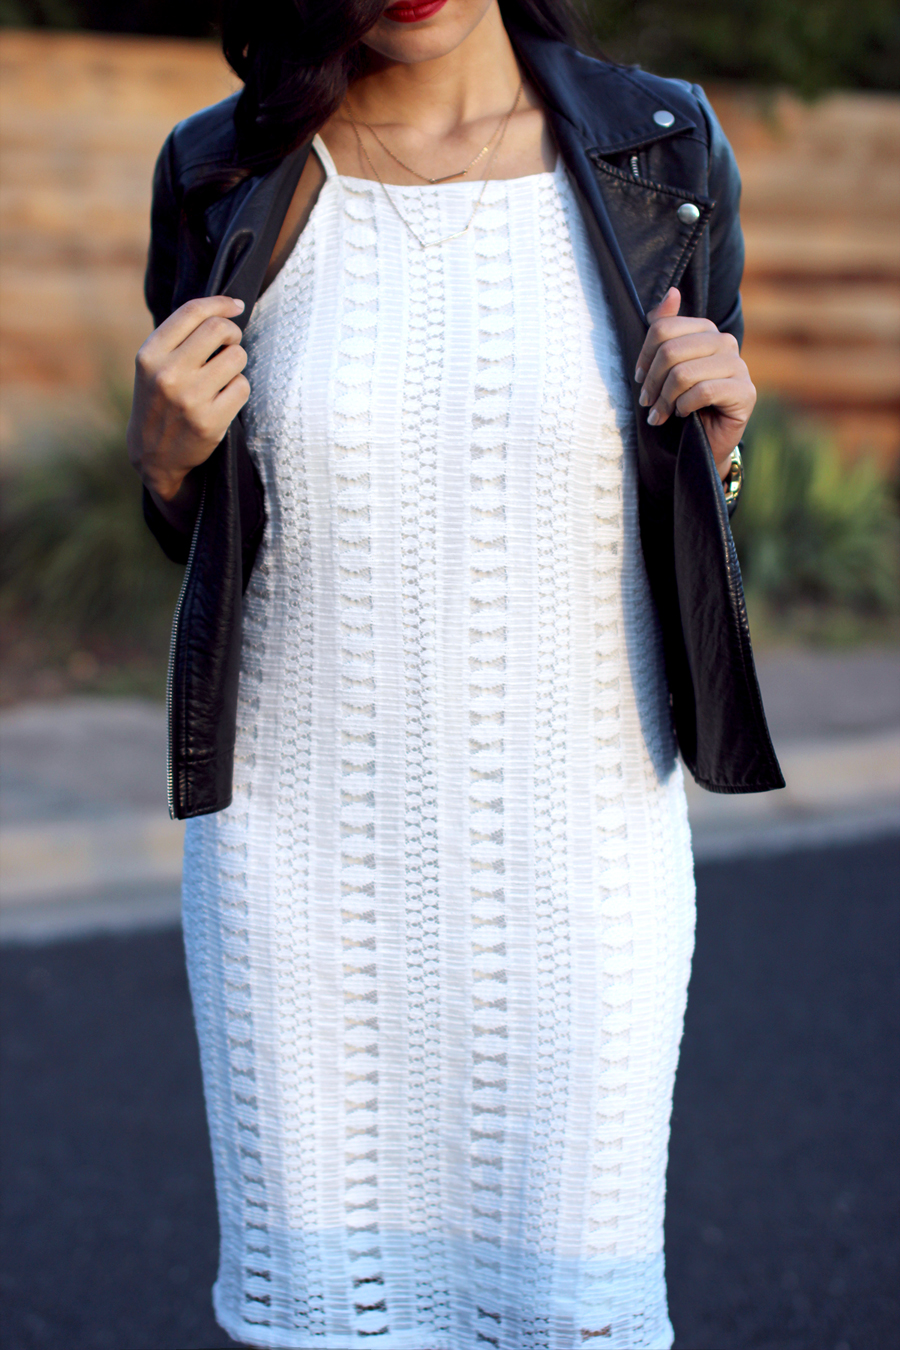 FIXIN-TO-THRILL-WHITE-HALTER-DRESS-STRAPPY-HEELS-LEATHER-TREND-FALL-OCTOBER-ATX-AUSTIN-STYLE-BLOG-FW15-TRENDY-CHIC-GLAM-TEXAS-7